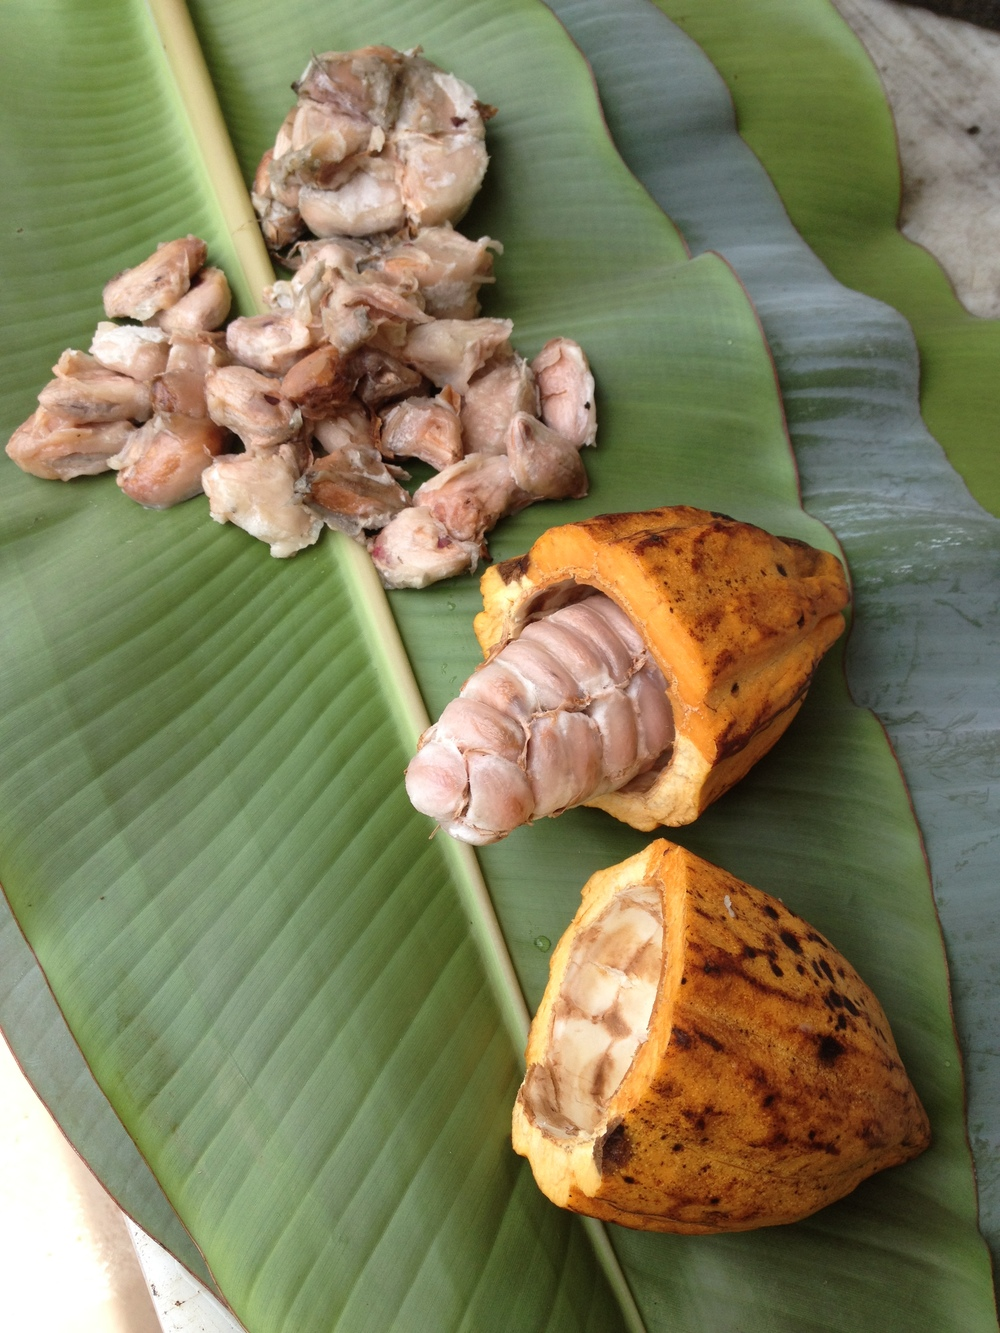 Cocoa Pods, opened and ready to wrap in banana leaves.